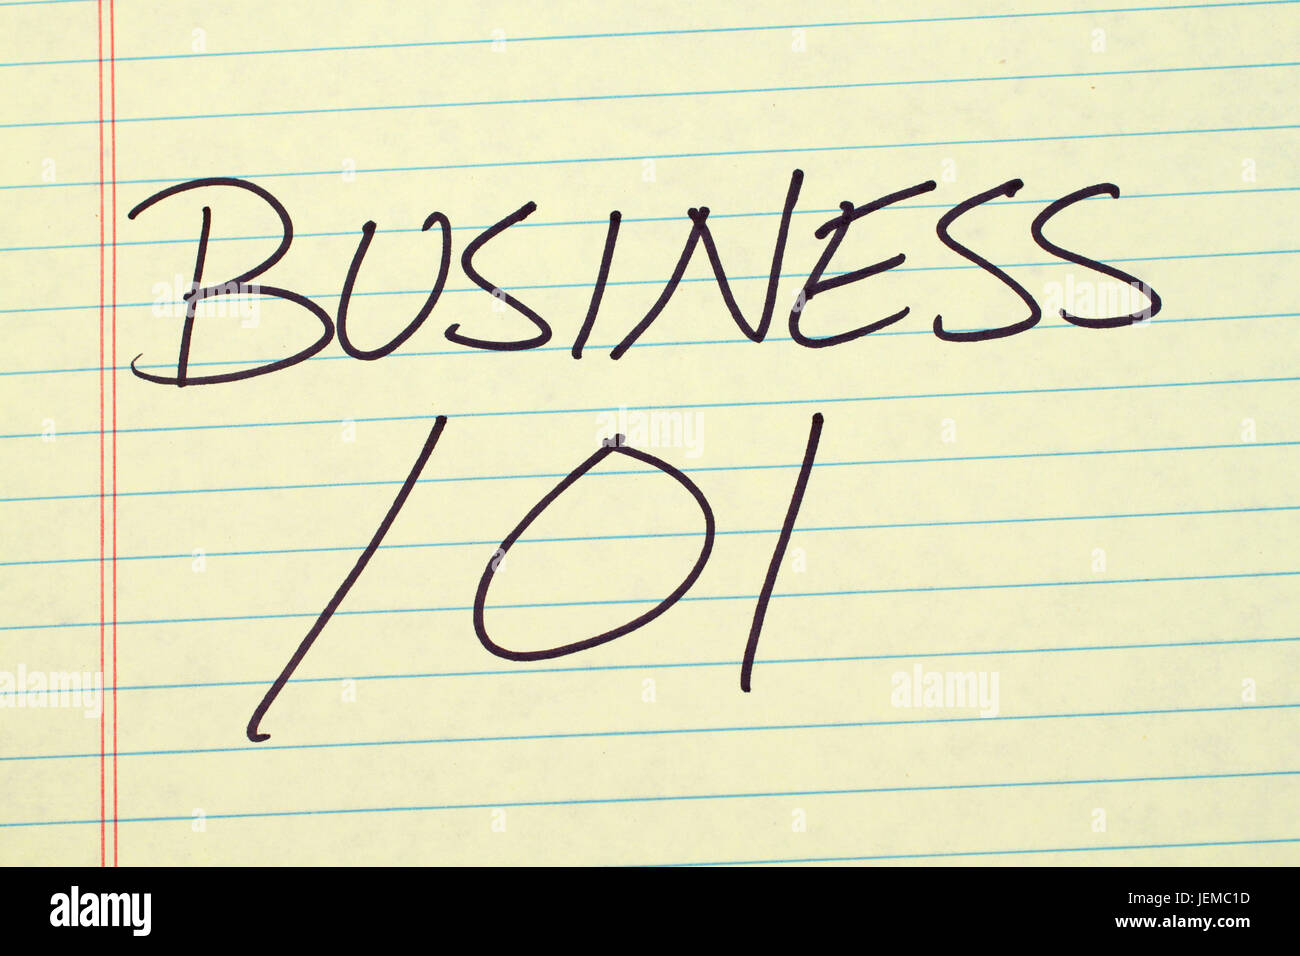 The words 'Business 101' on a yellow legal pad - Stock Image